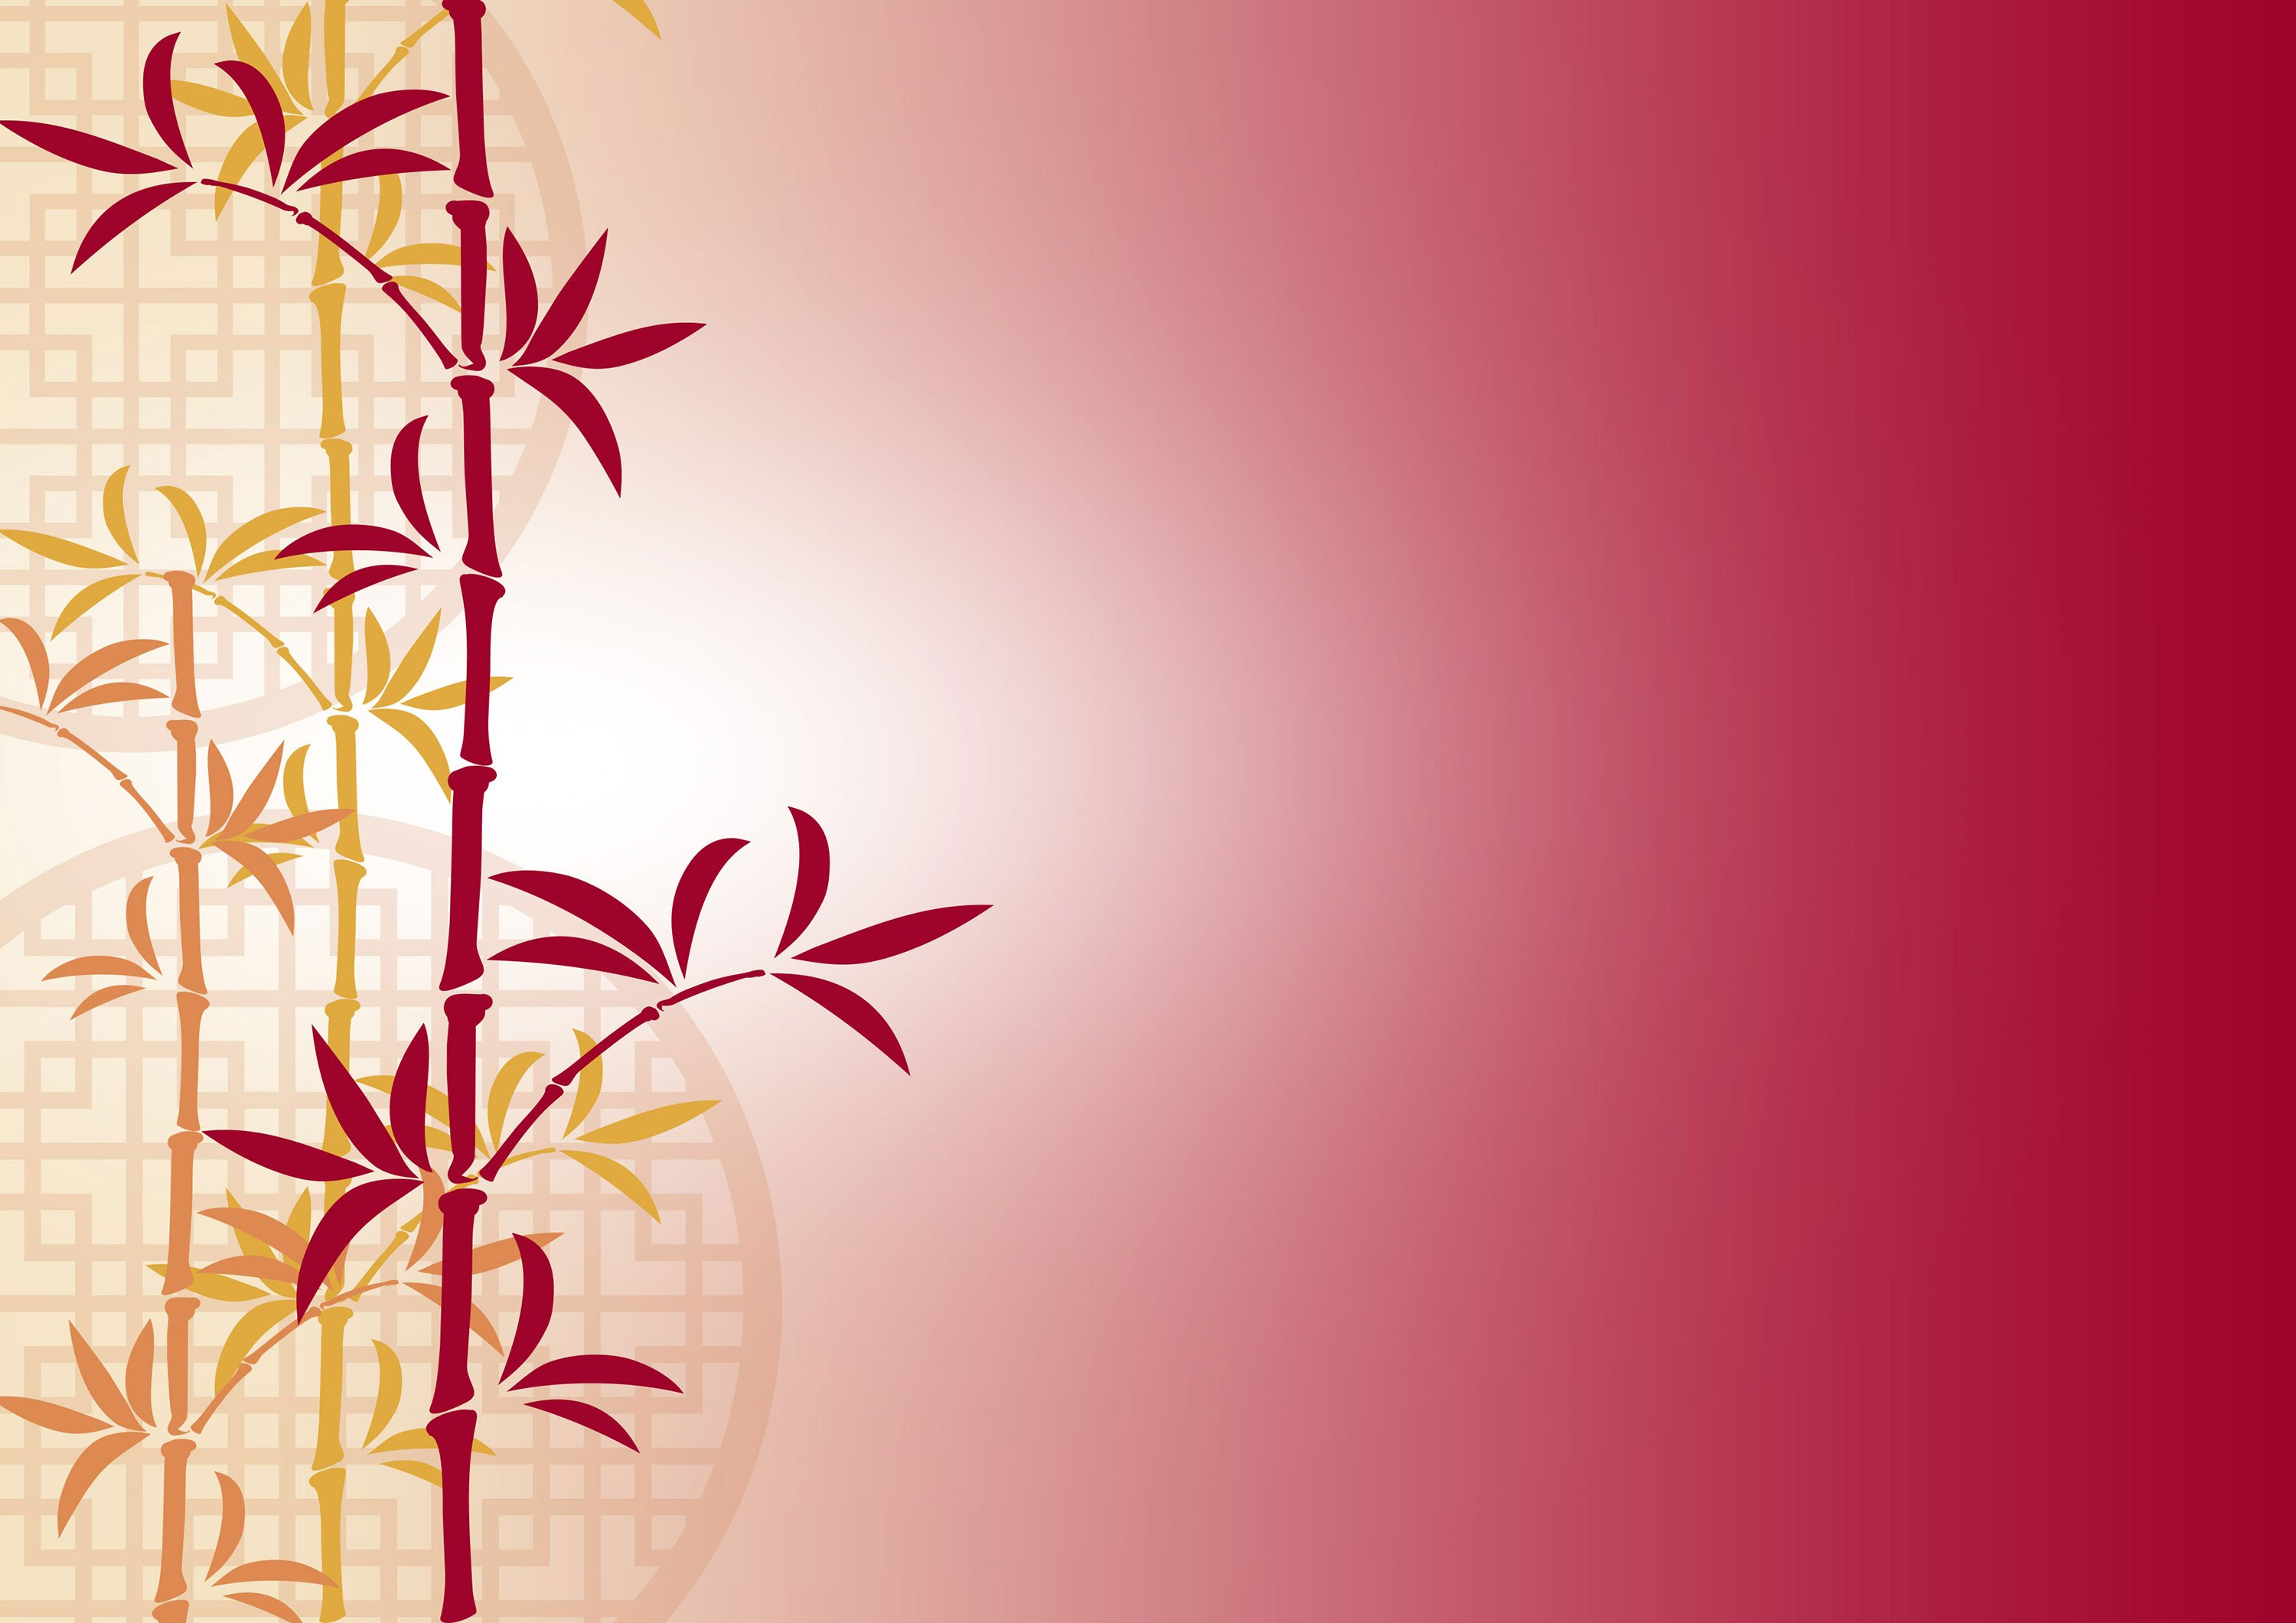 free download hd wallpaper background for chinese new year card hd wallpapers for 3000x2121 for your desktop mobile tablet explore 45 chinese new year 2016 wallpaper best wallpapers of chinese new year card hd wallpapers